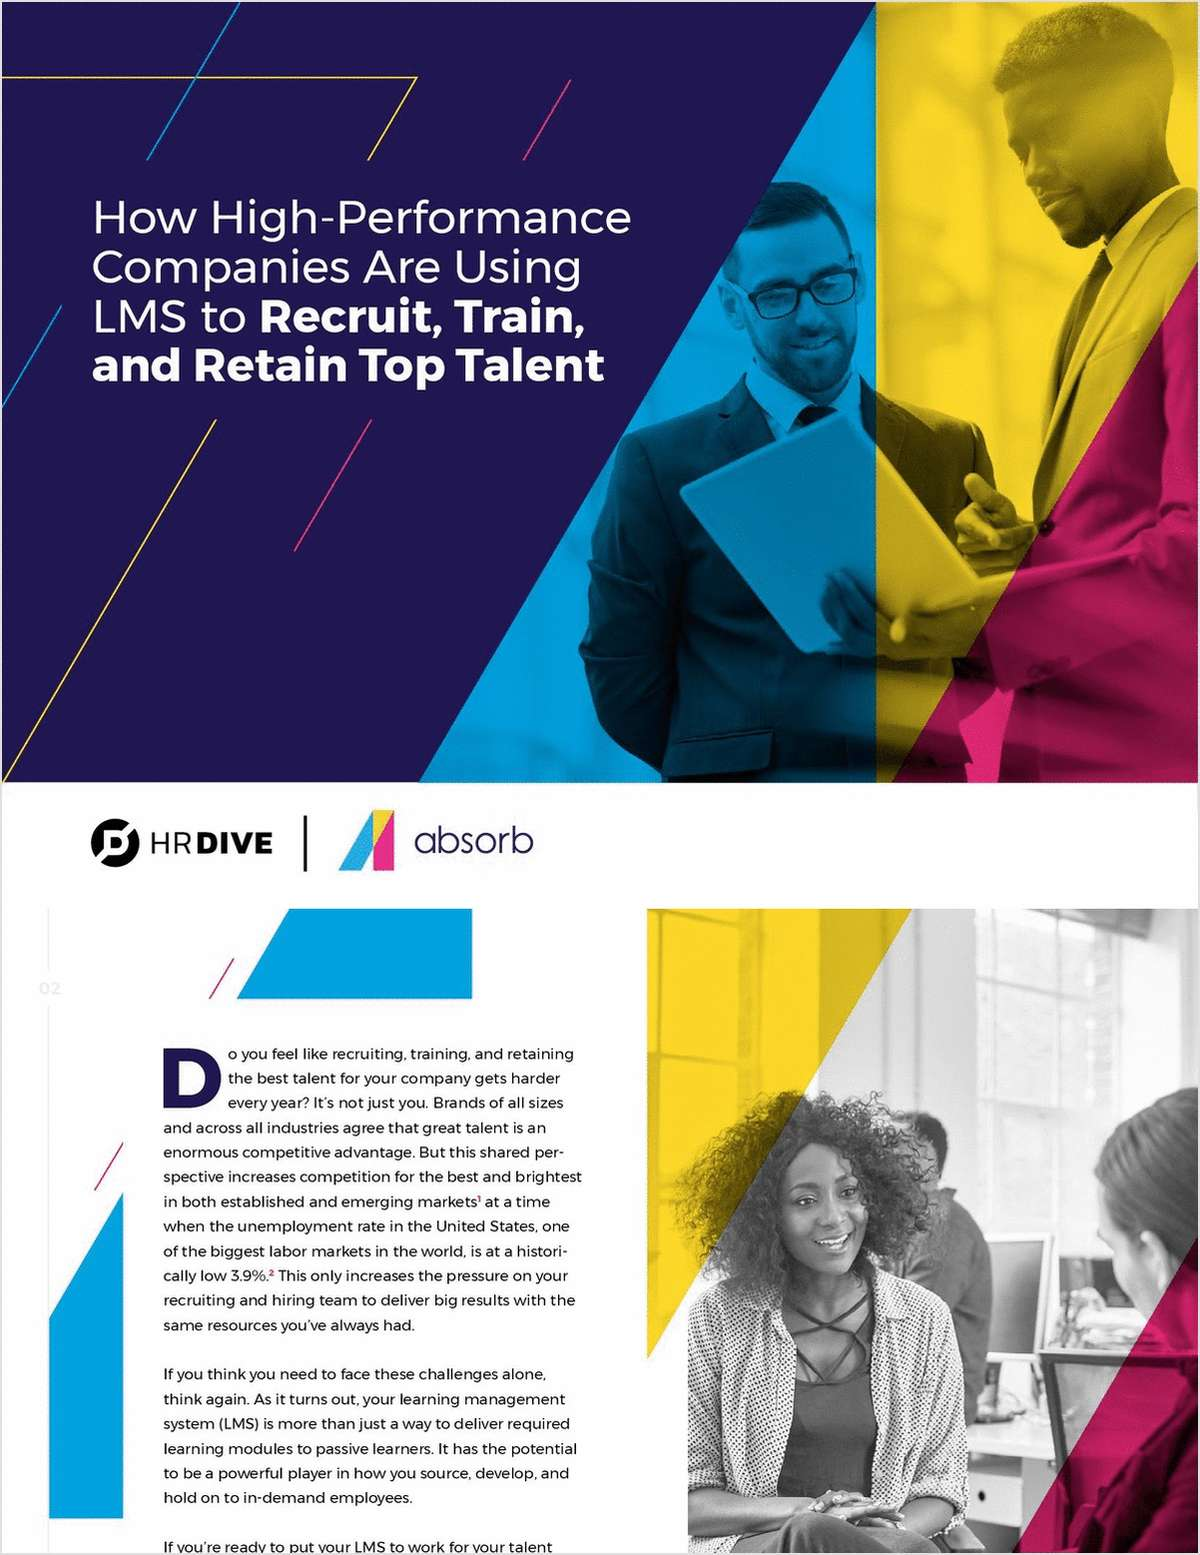 How High-Performance Companies Are Using LMS to Recruit, Train and Retain Top Talet